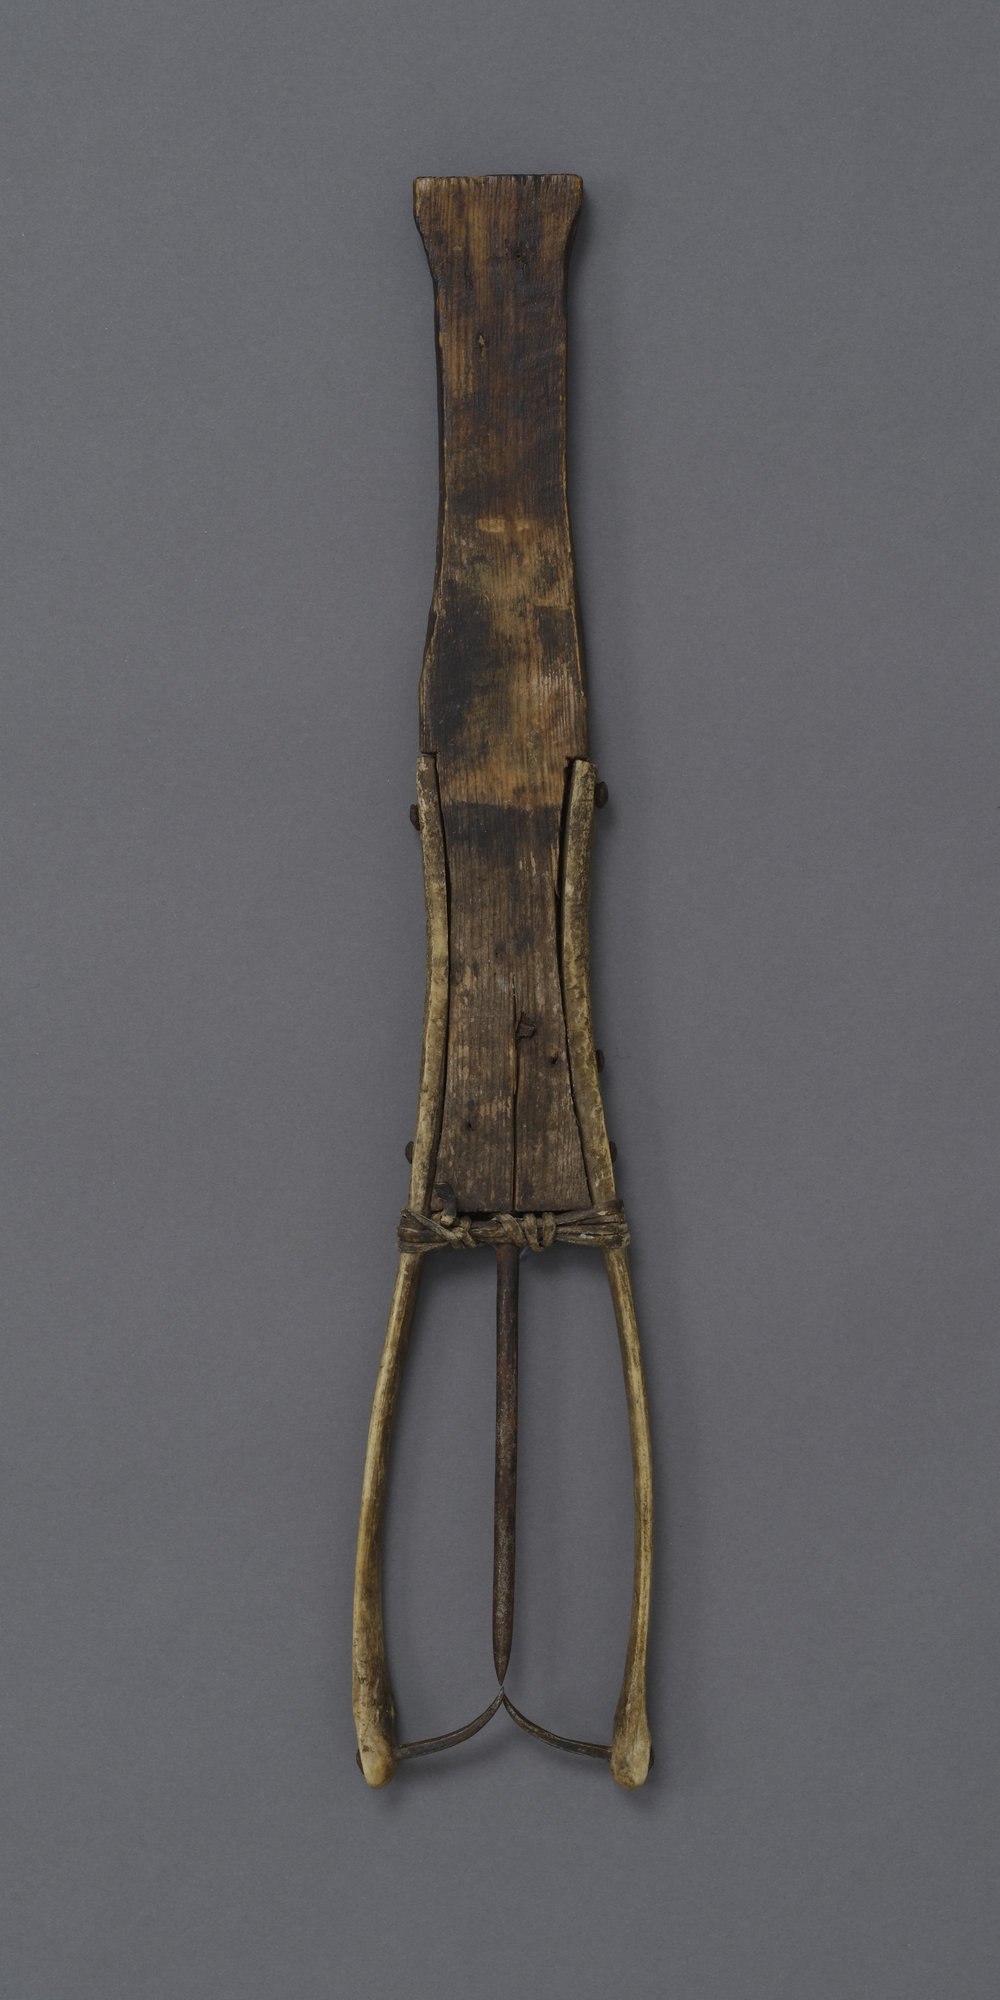 Canadian (Inuit), fishing spear or leister, 19th century, collected 1920–30. Wood, caribou bone, and leather. length: 18 1/4 in. Hood Museum of Art, Dartmouth College: Gift of Robert O. Fernald, Class of 1936; 158.25.14219.